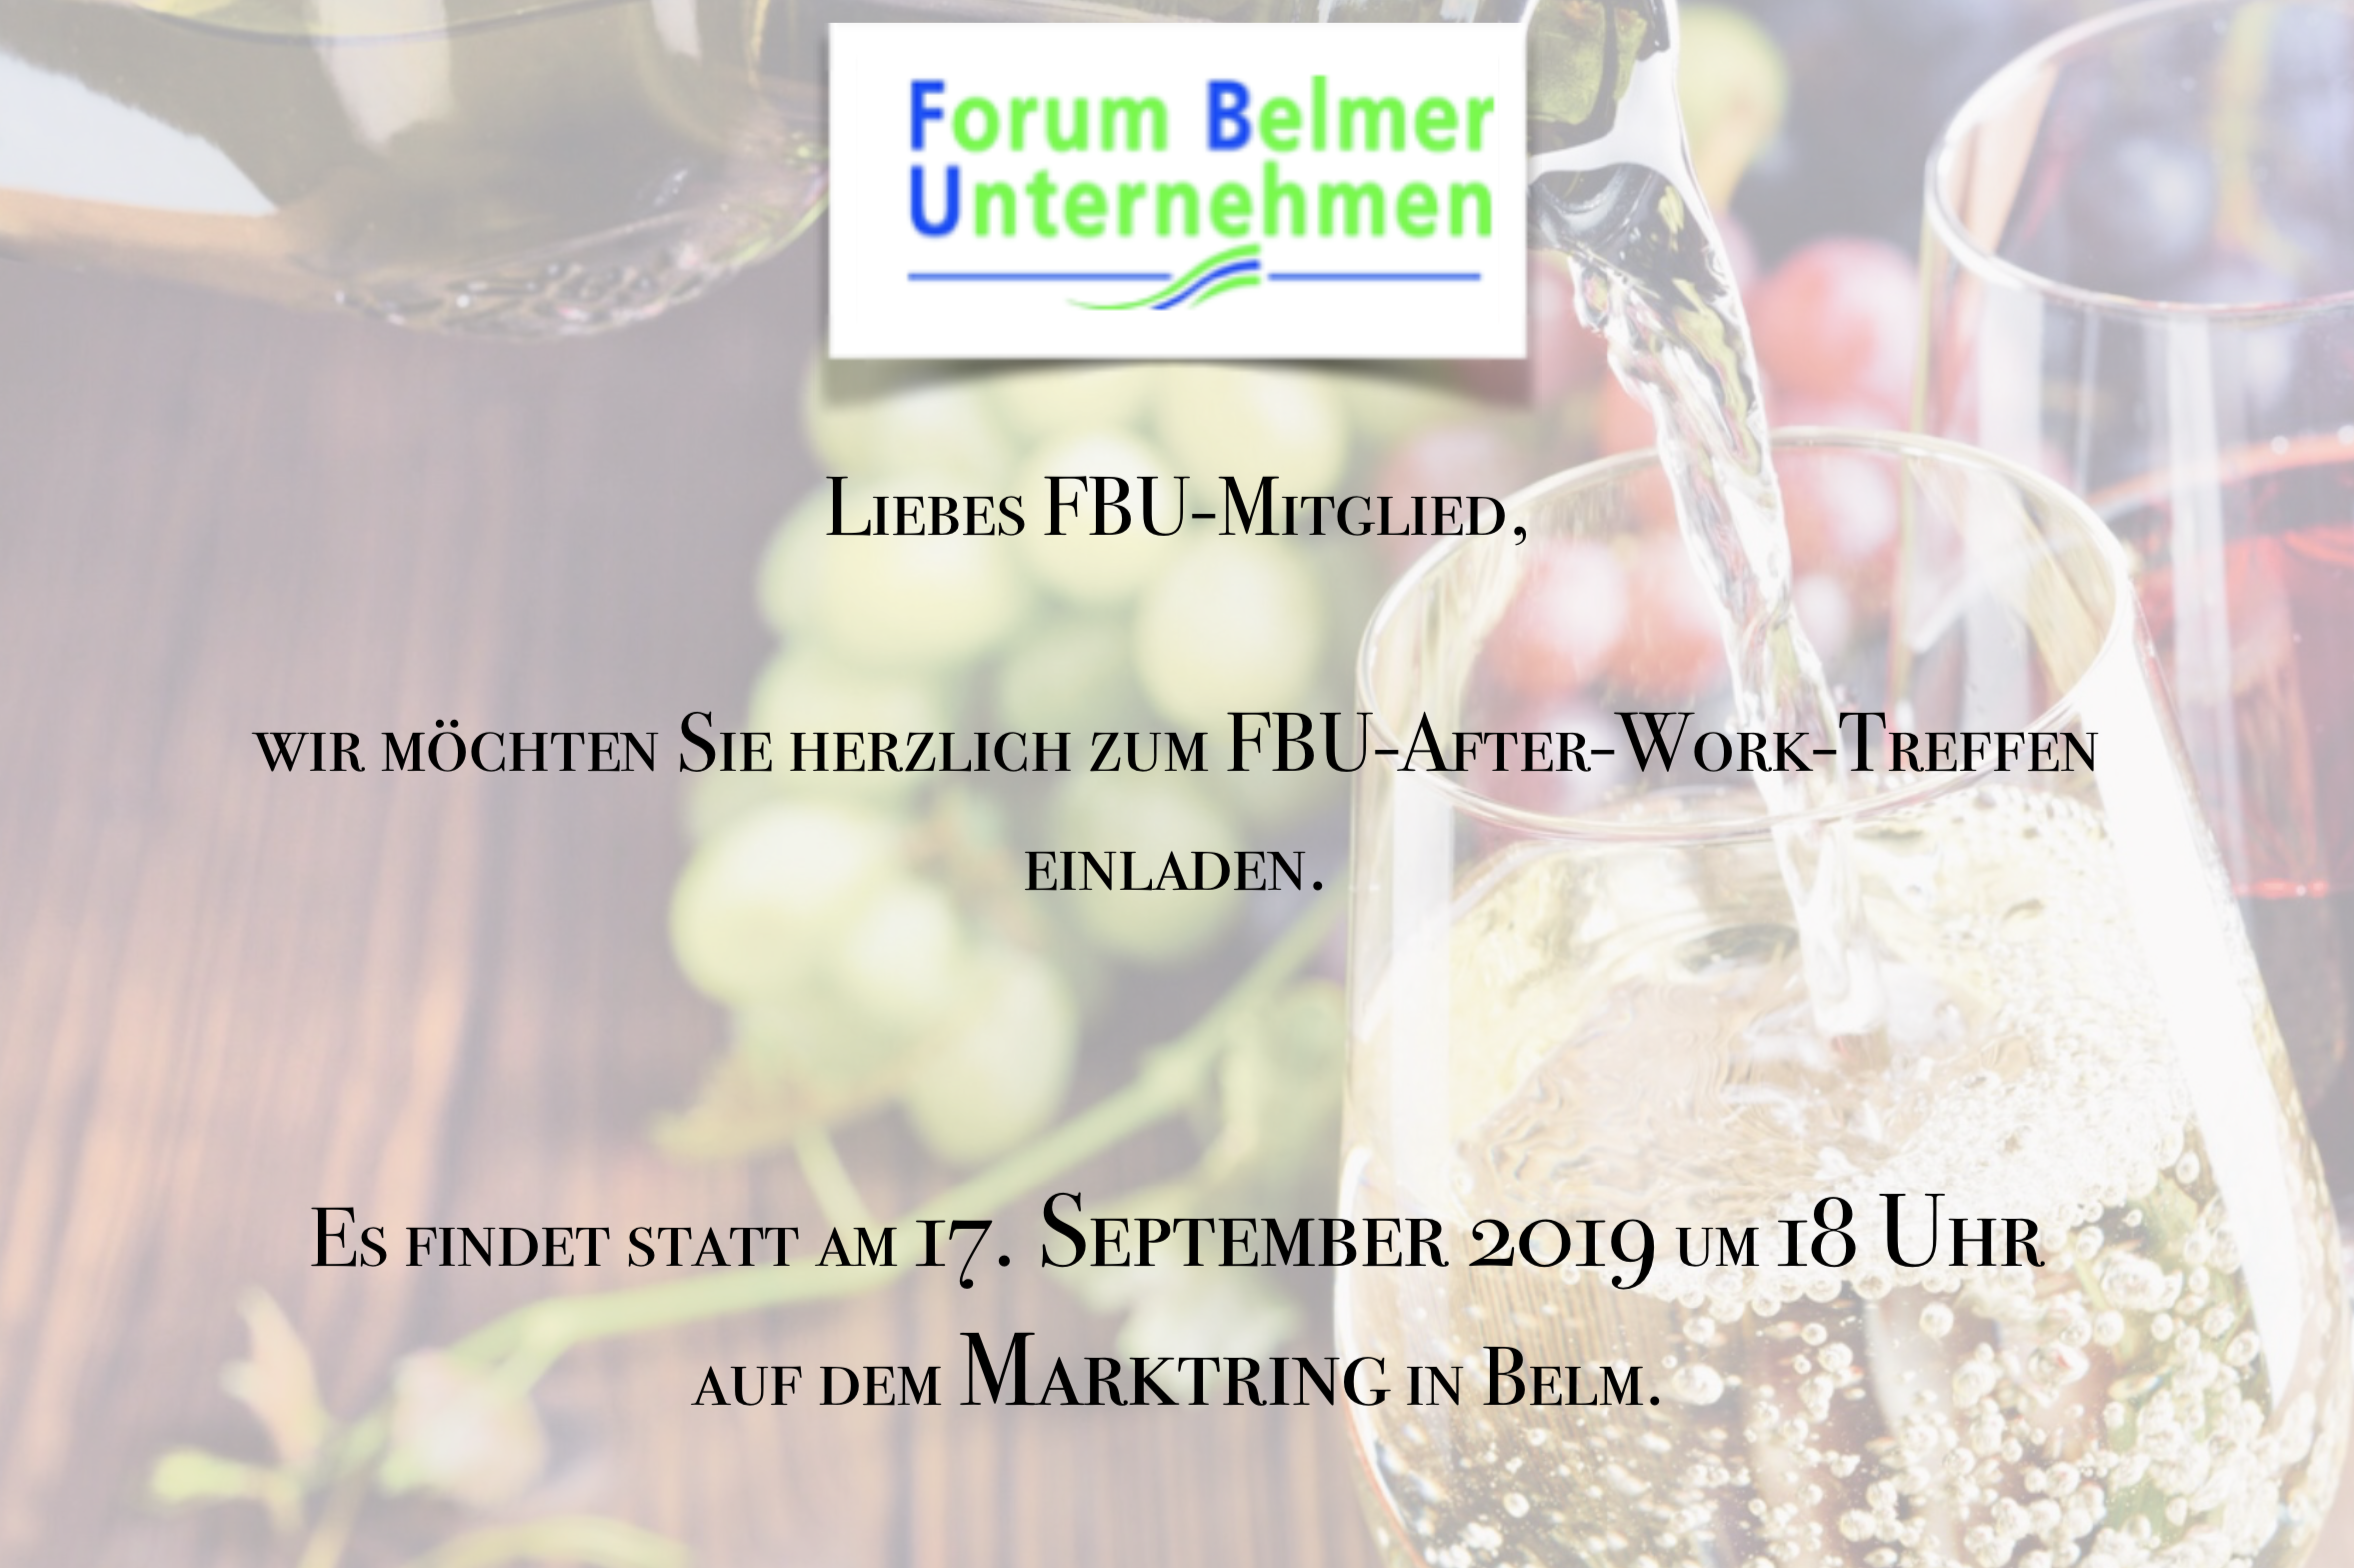 FBU After Work Treffen Belm City Forum Beamer Unternehmen